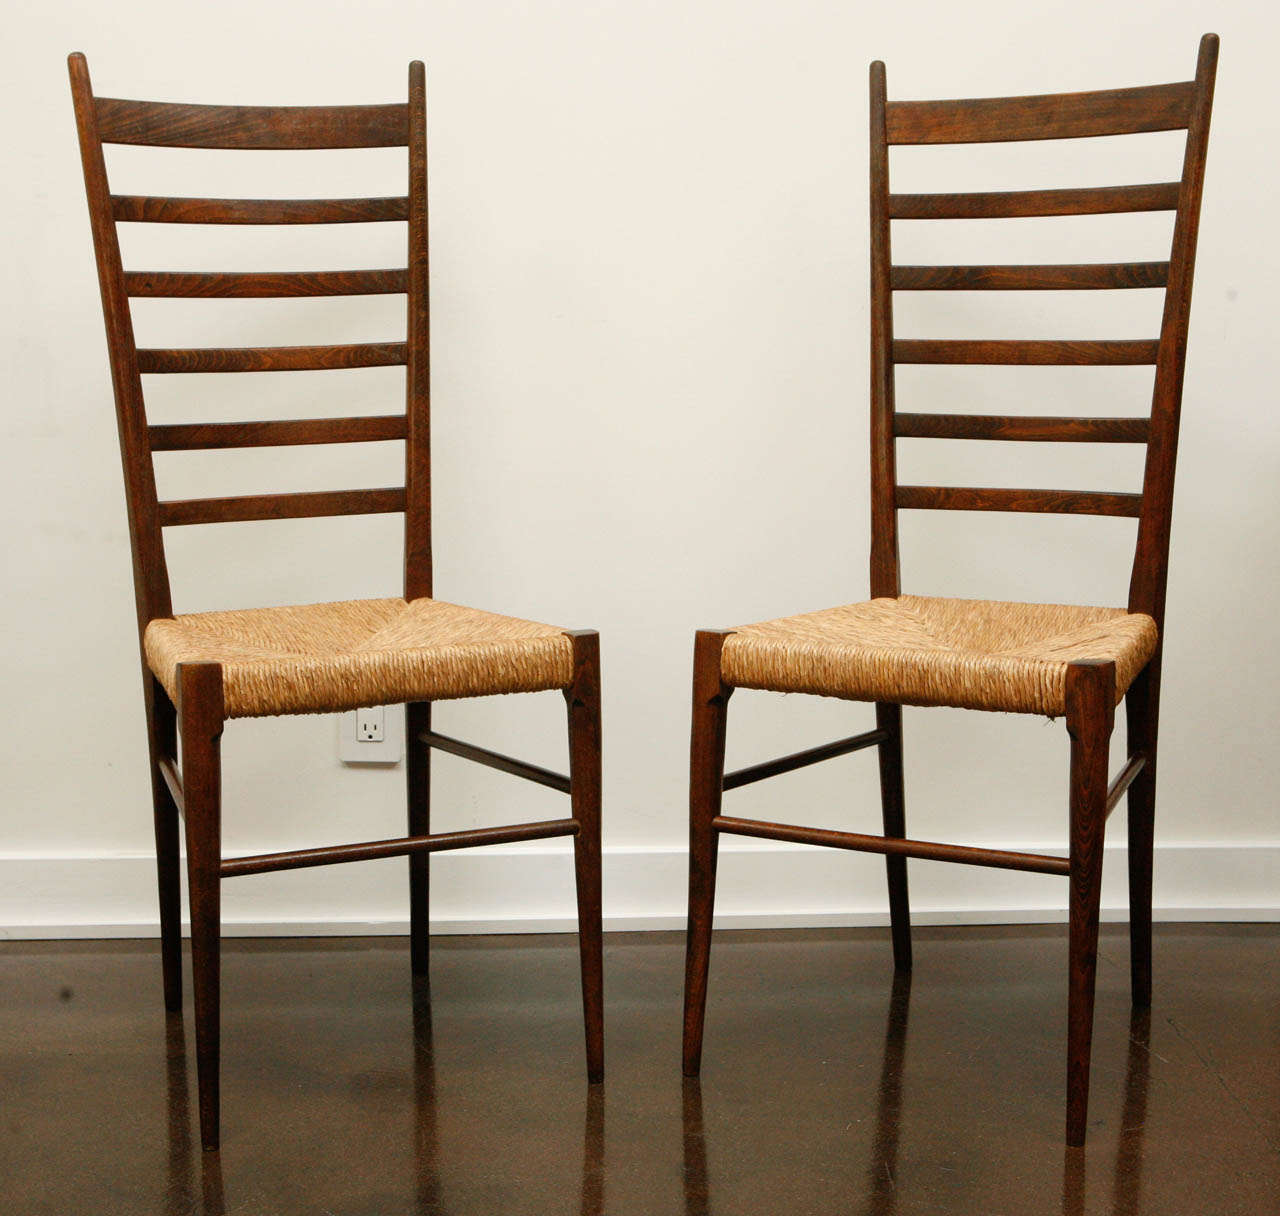 Pair Of Italian Ladder Back Chairs With Woven Seats 2